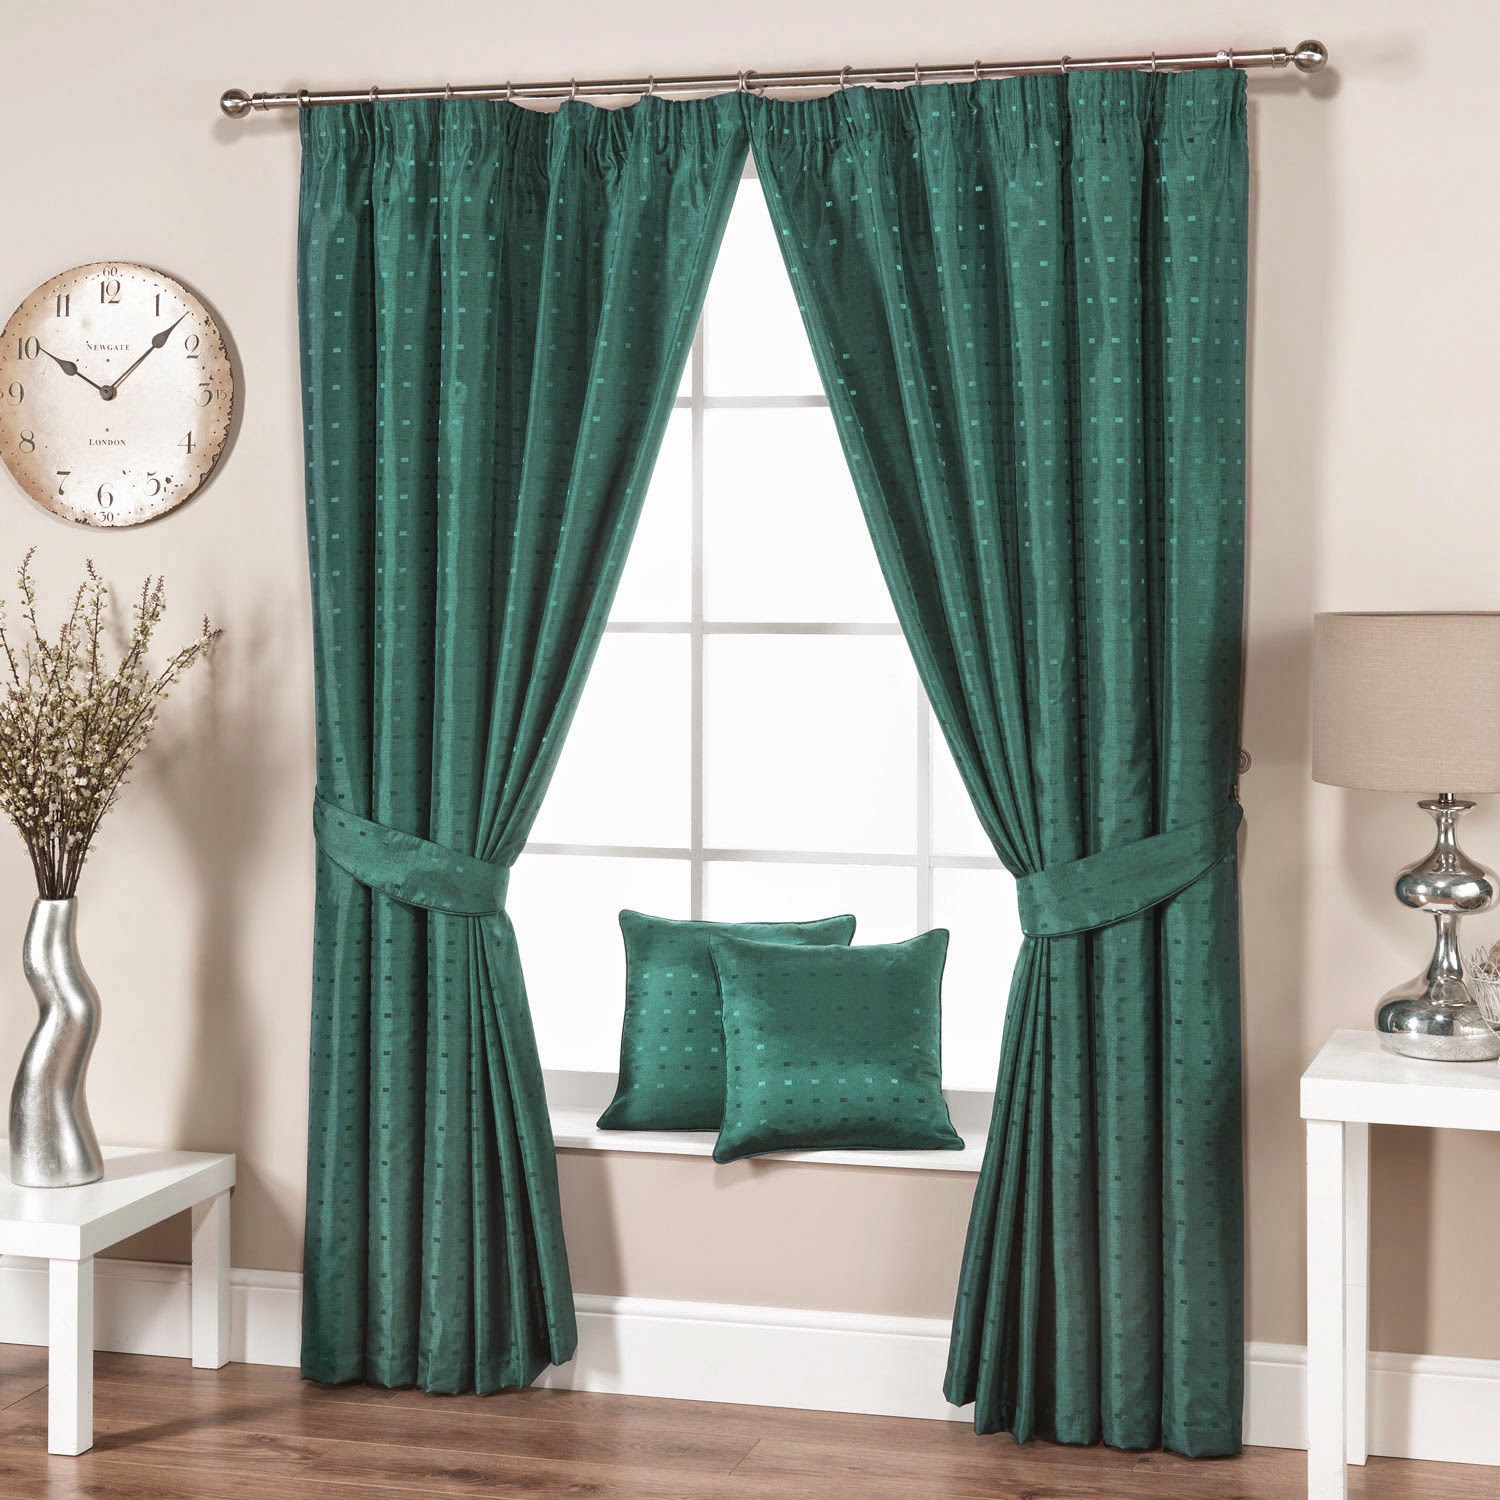 green living room curtains for modern interior With aqua curtains living room